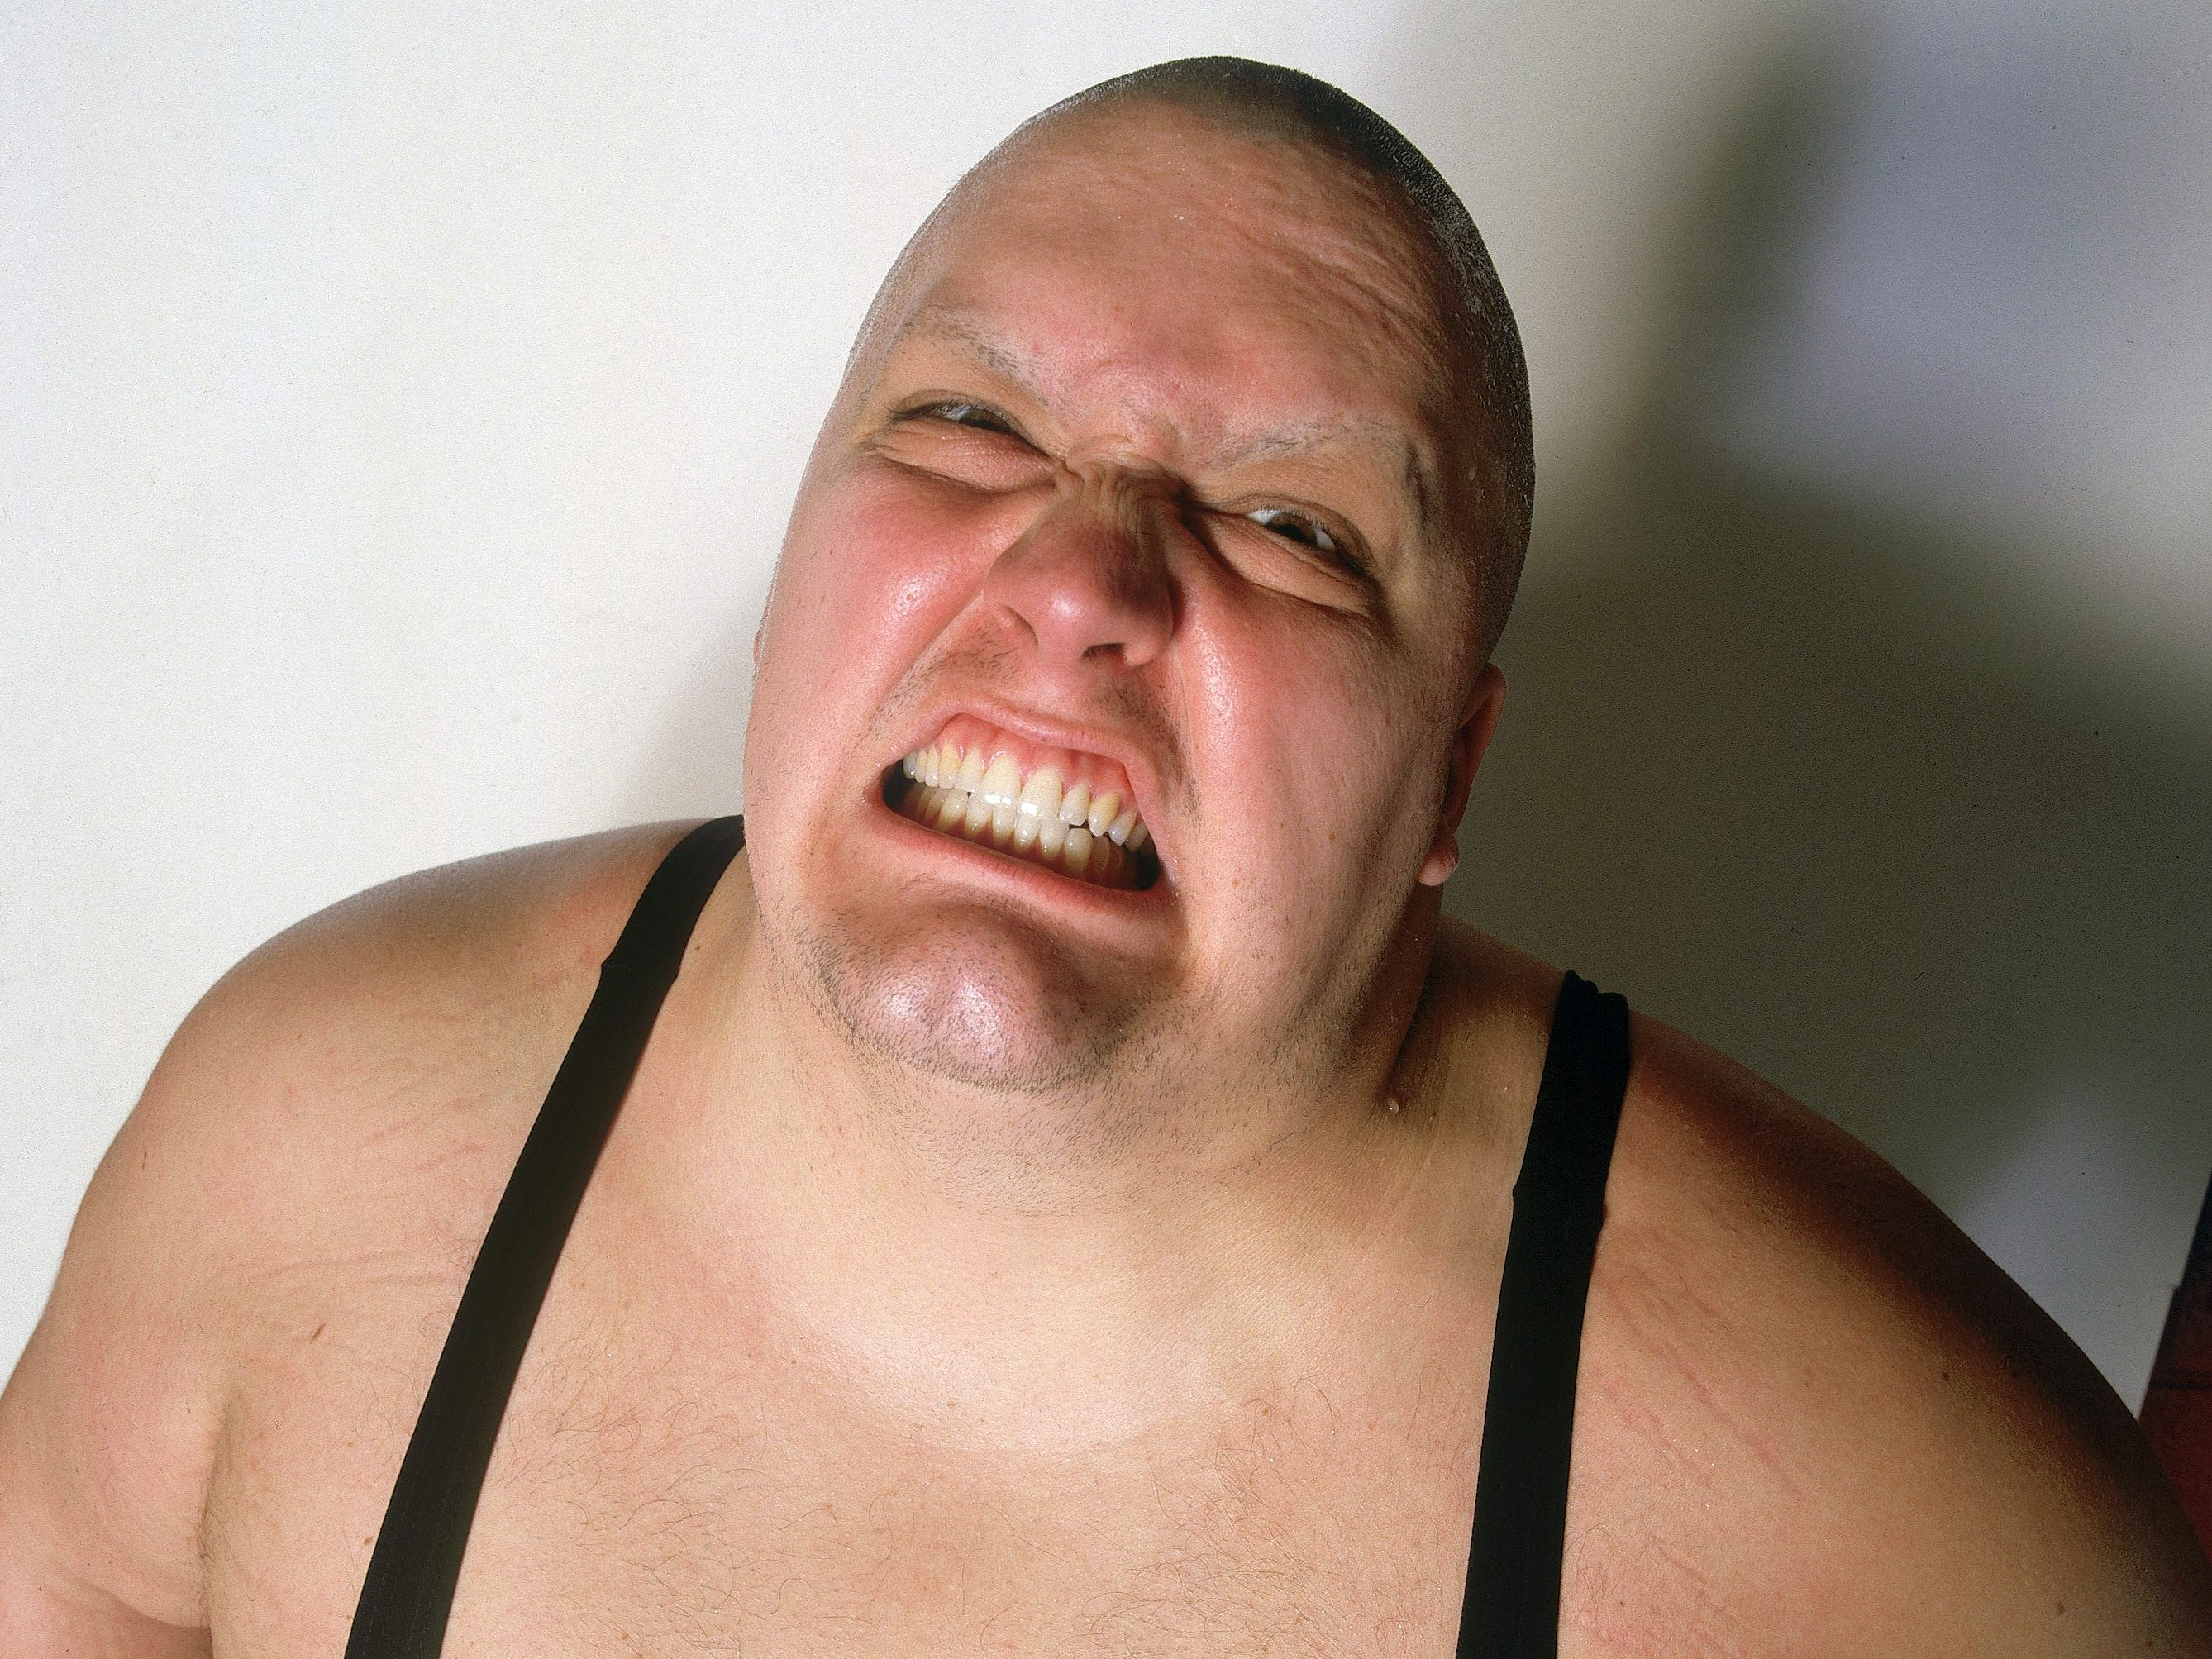 King Kong Bundy posing during a photo shoot at Madison Square Garden in  New York City on March 17, 1985.